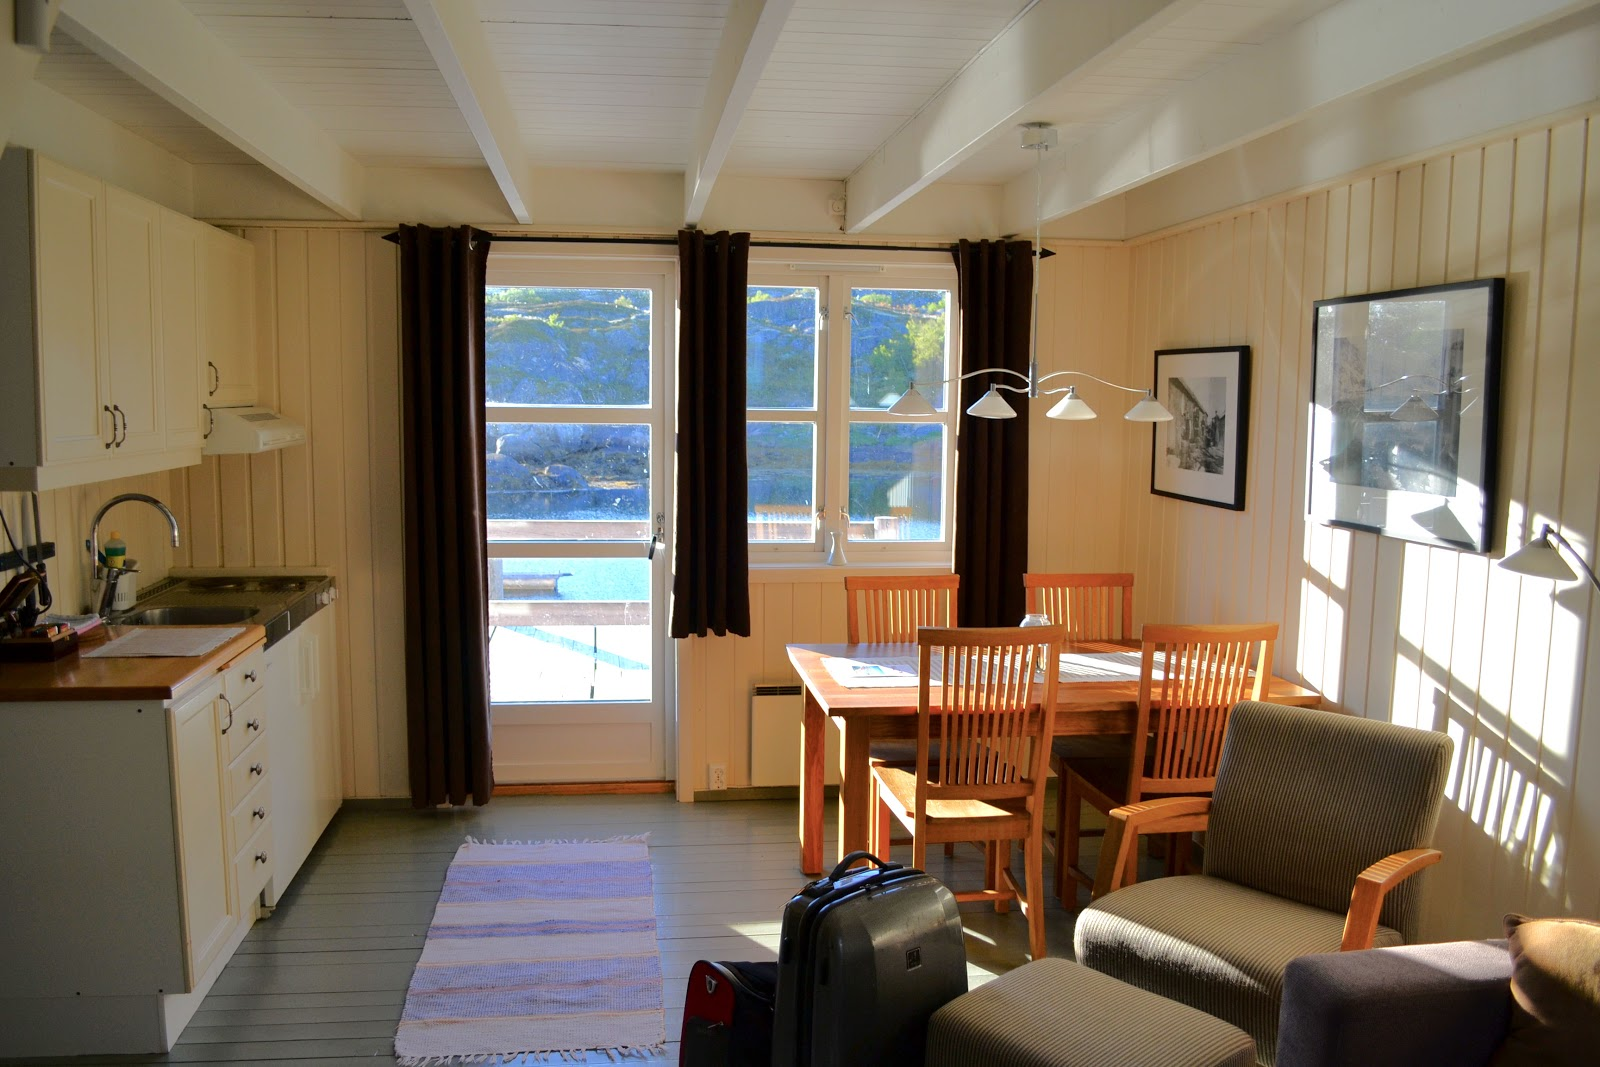 Kitchen and dining room overlook the fjord.